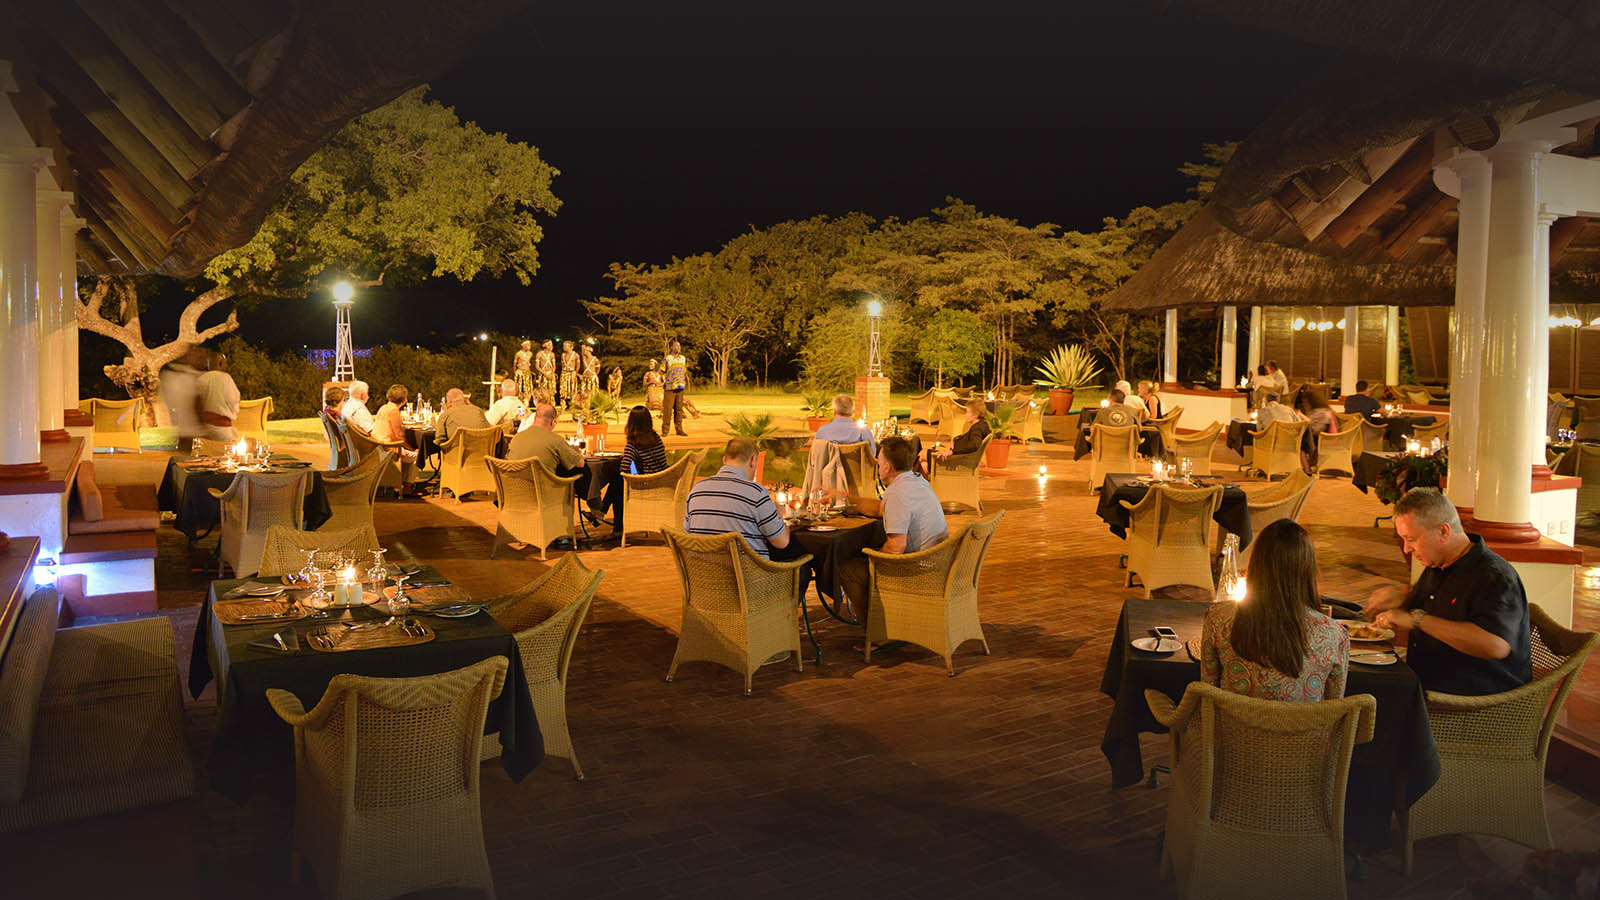 victoria falls hotel zimbabwe-accommodation-elegant-luxury-hotel-dinner